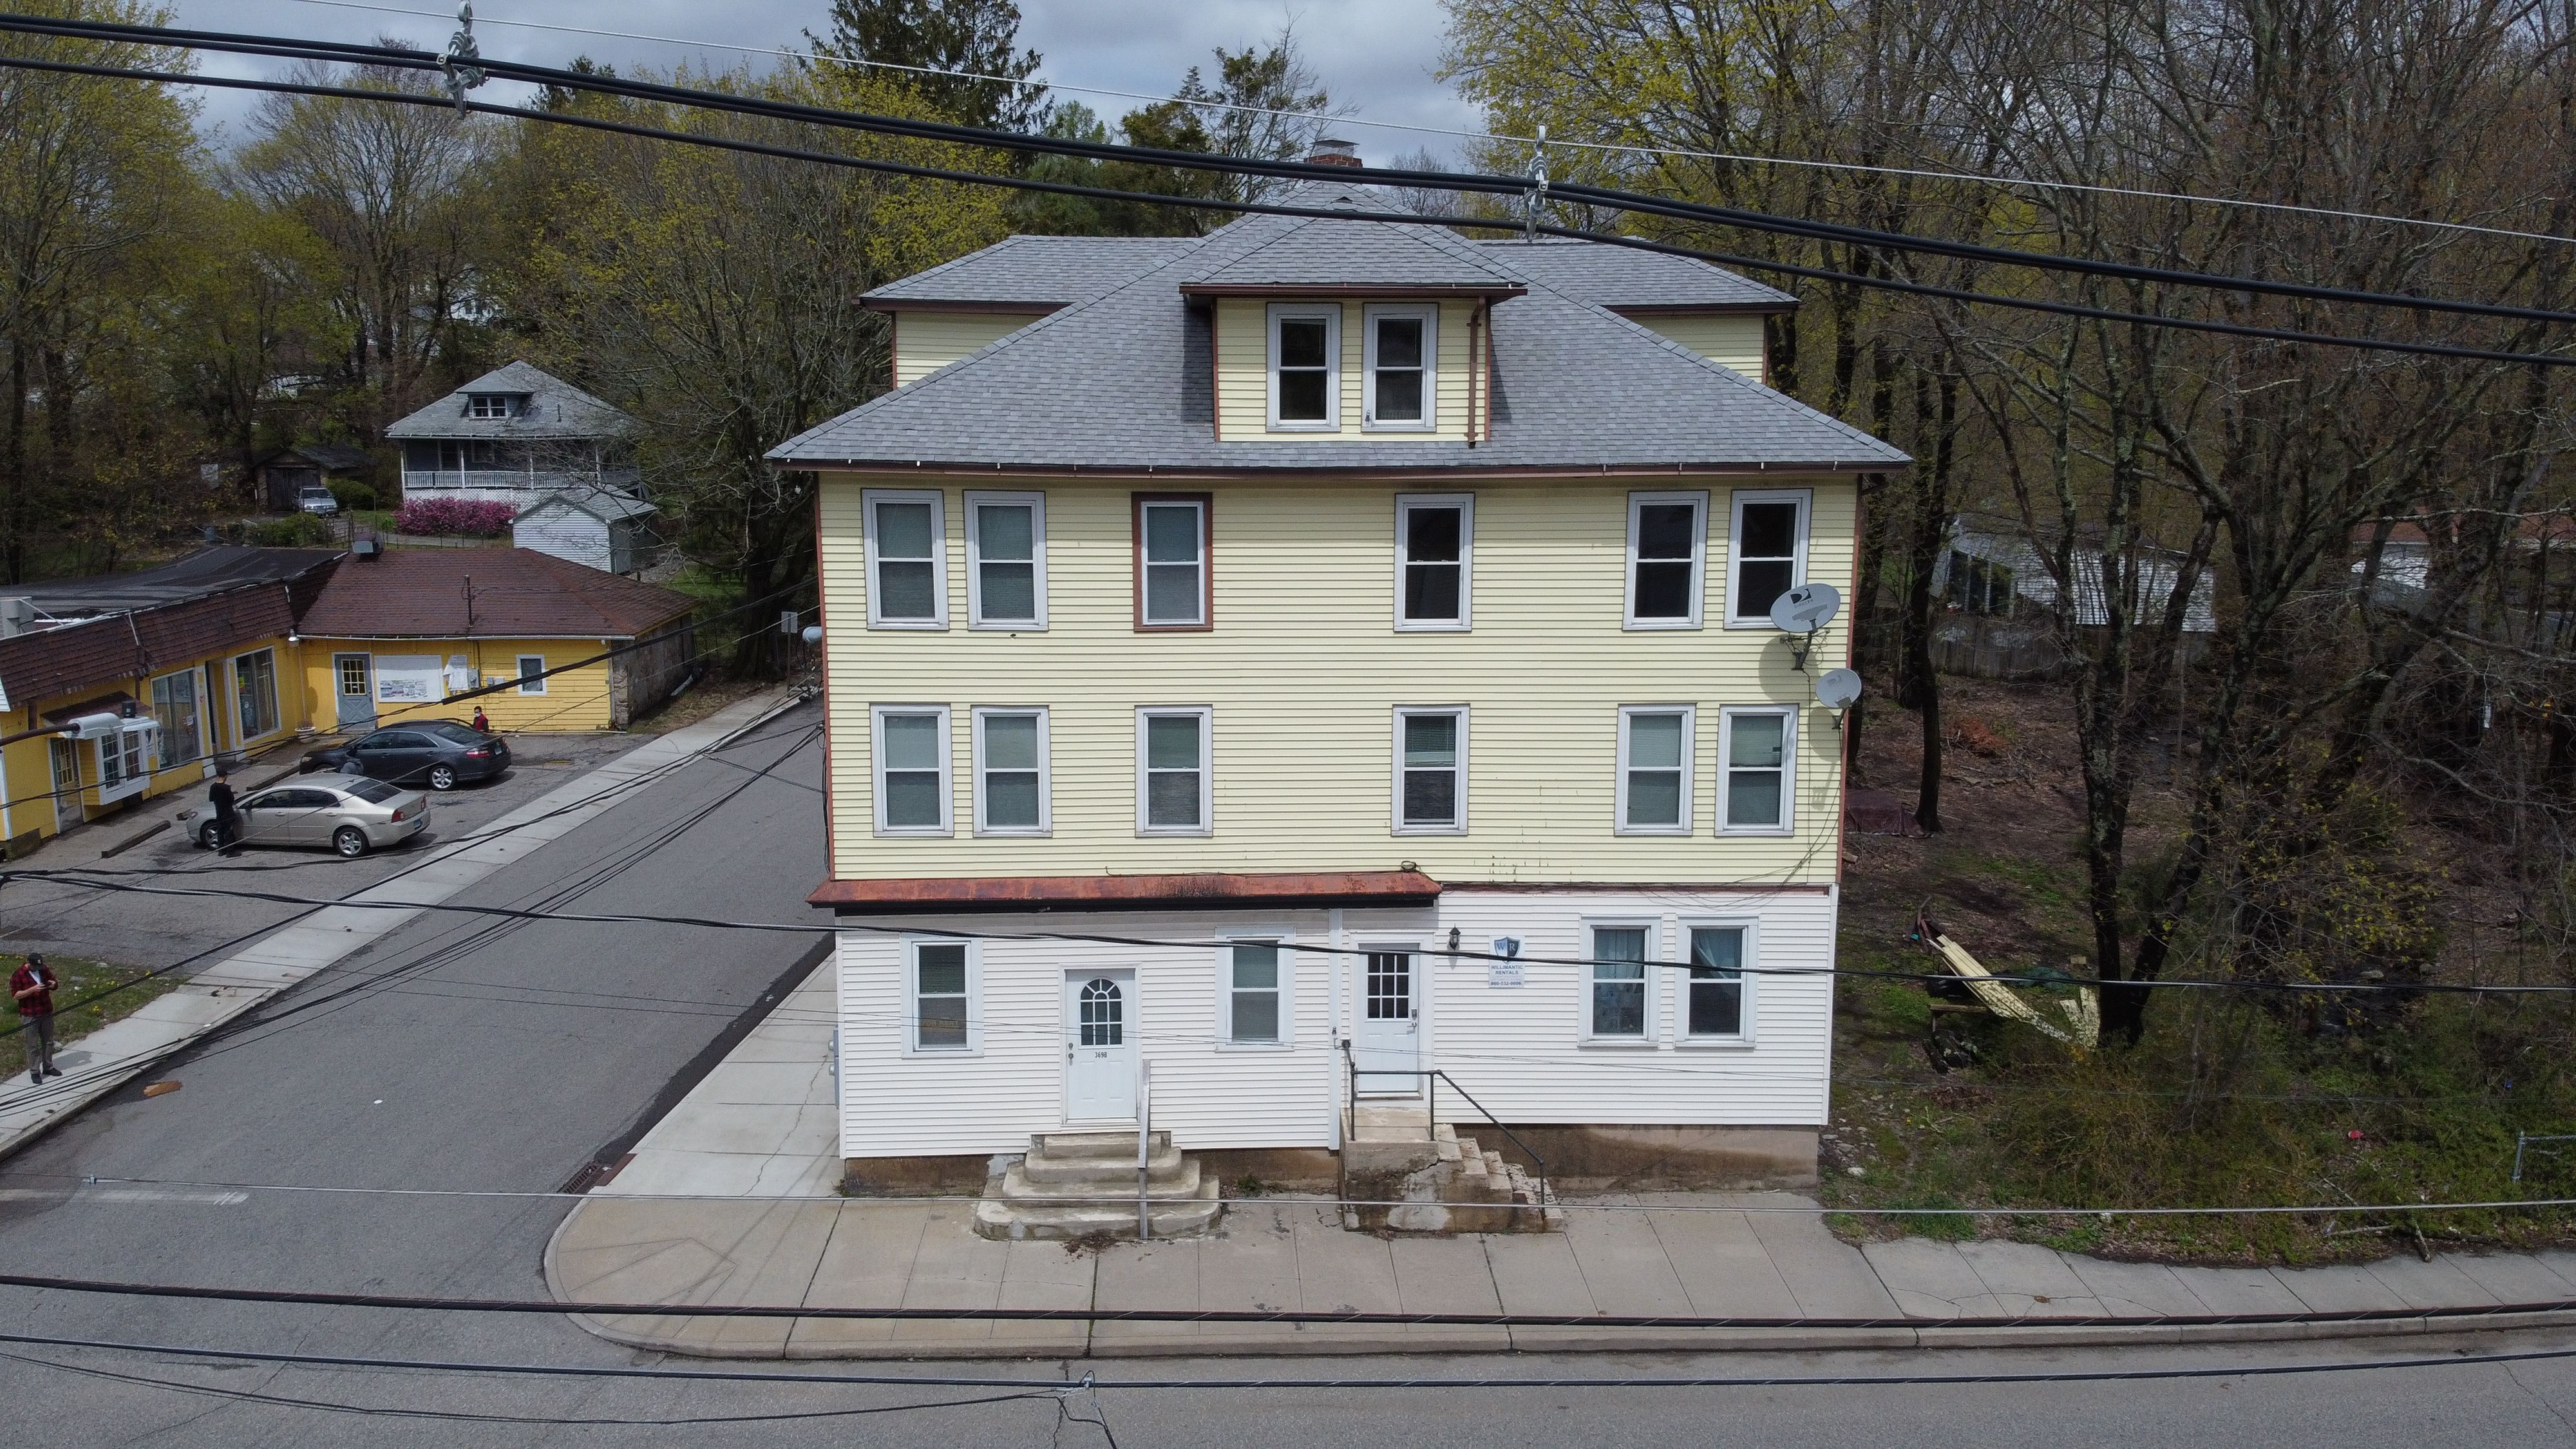 369 Valley St, Willimantic, CT